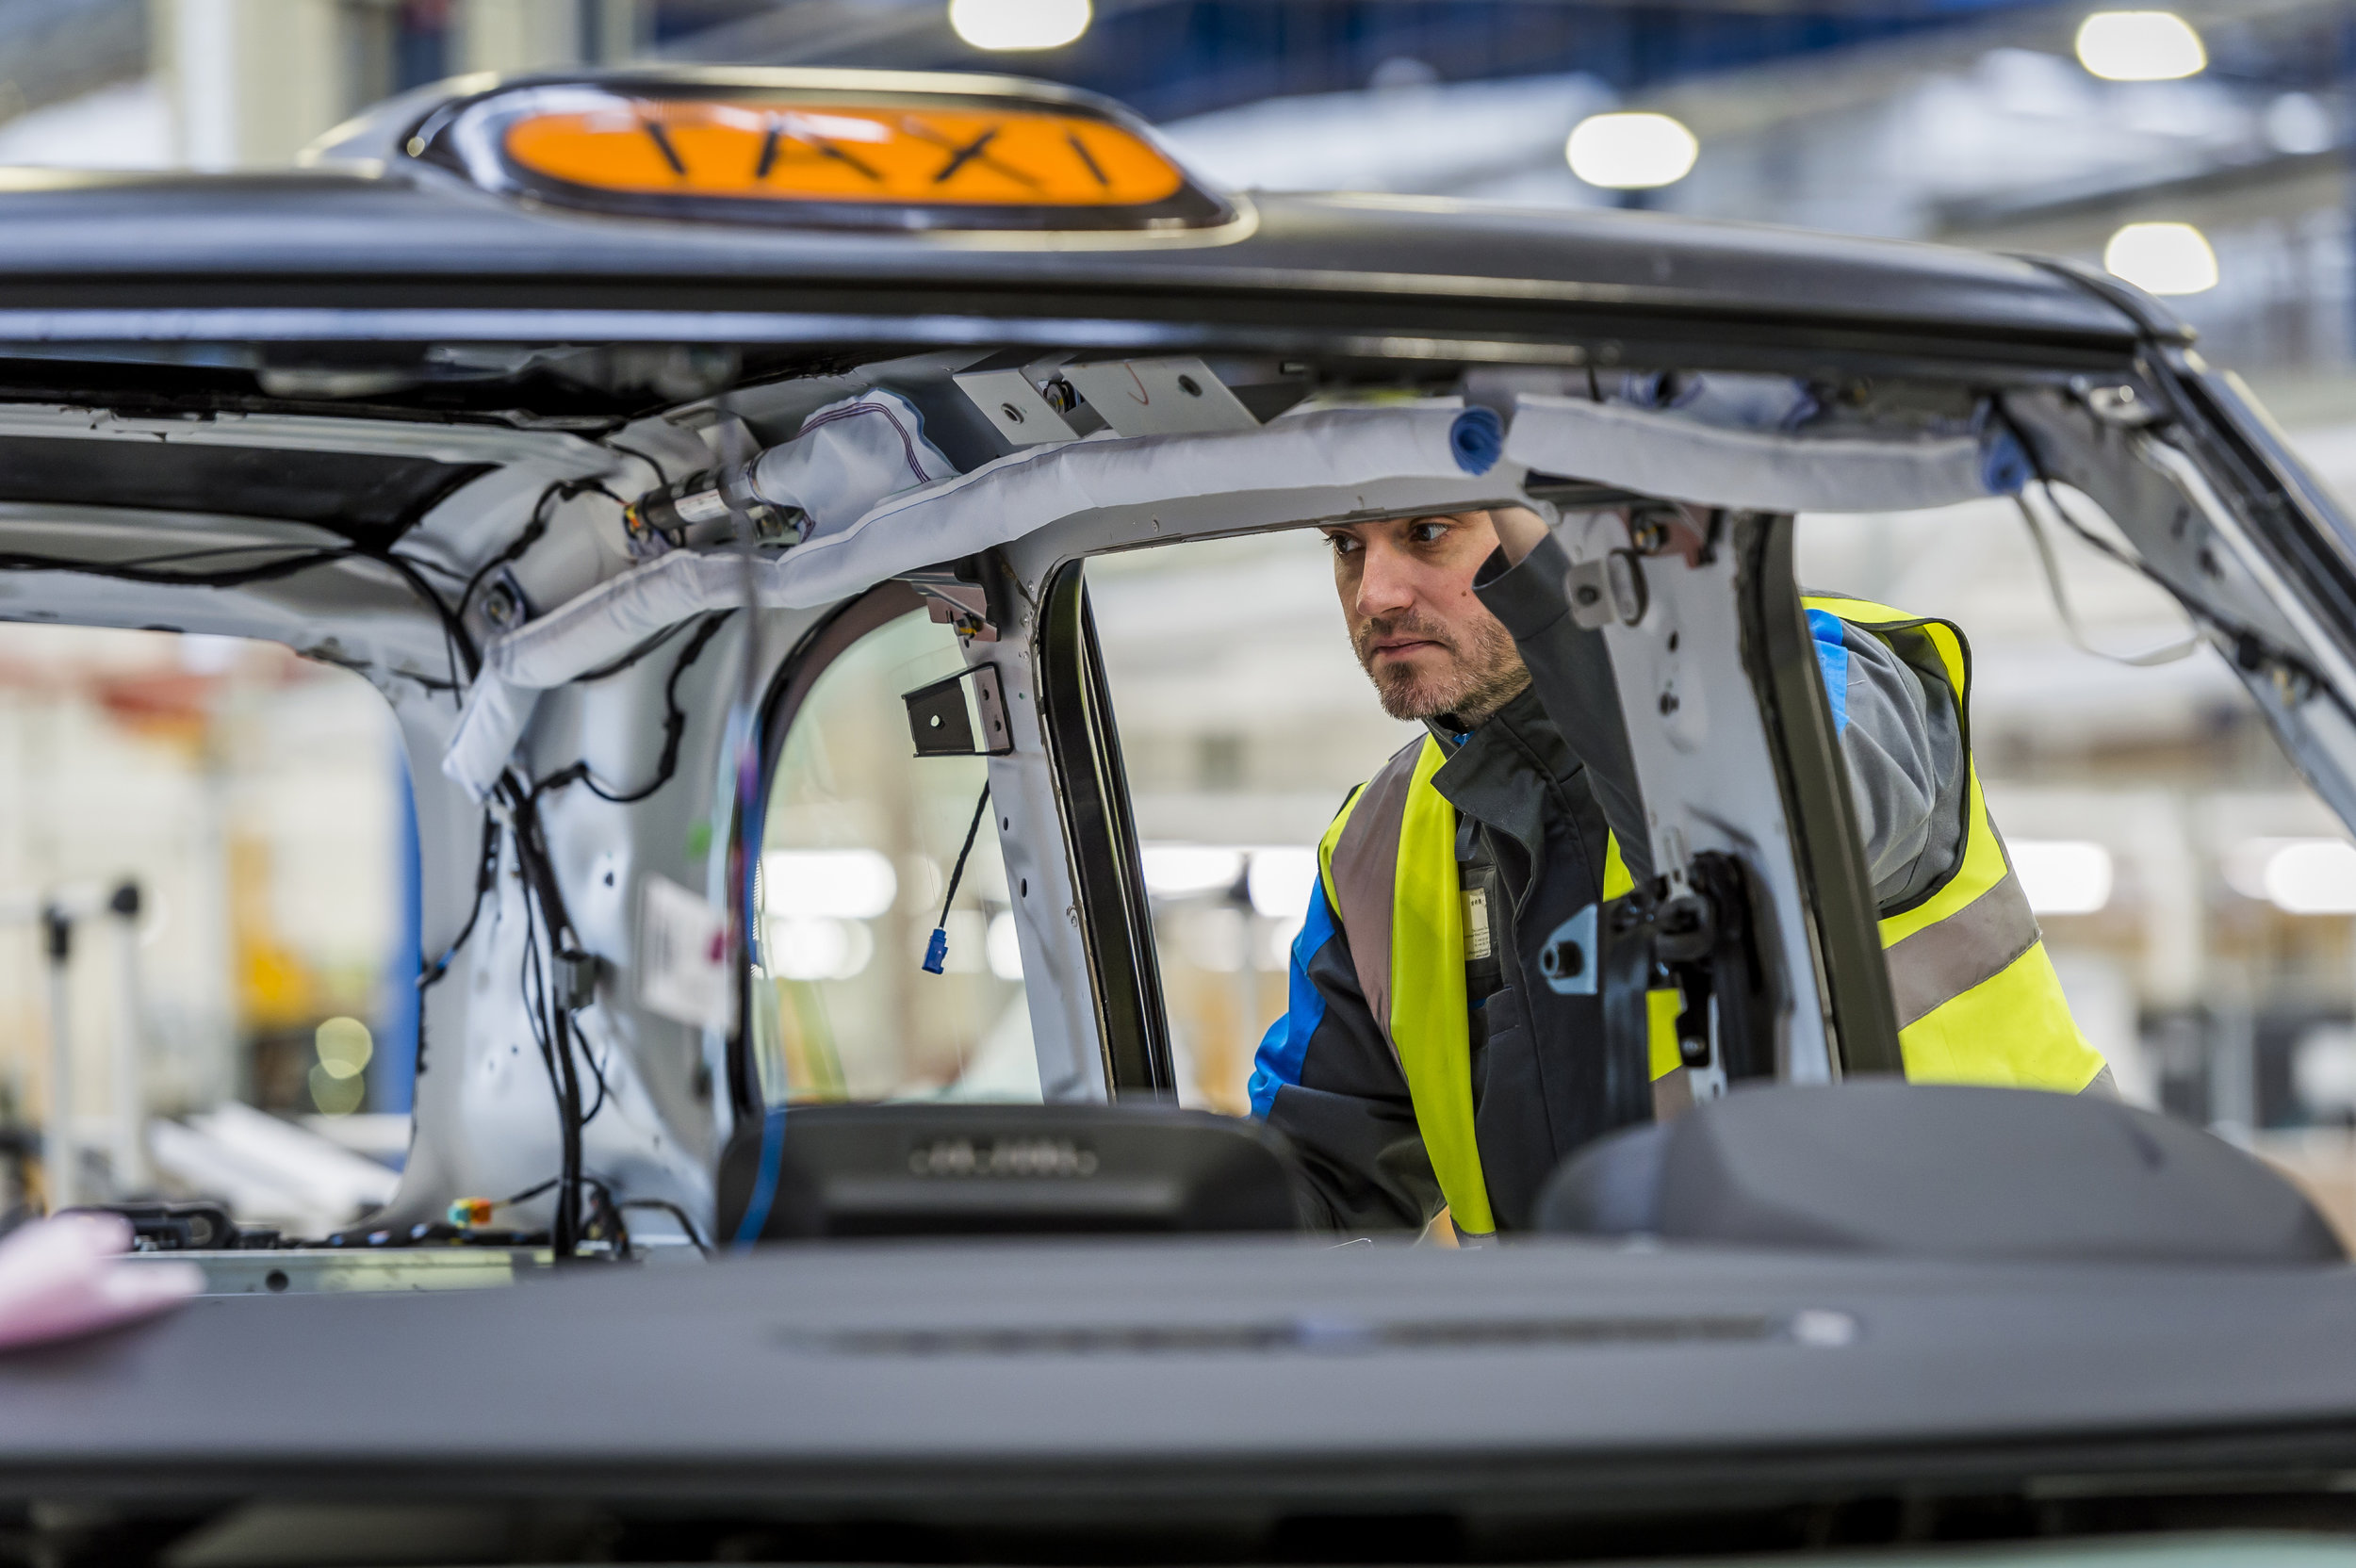 The company behind London's black cabs has just opened an electric taxi plant!